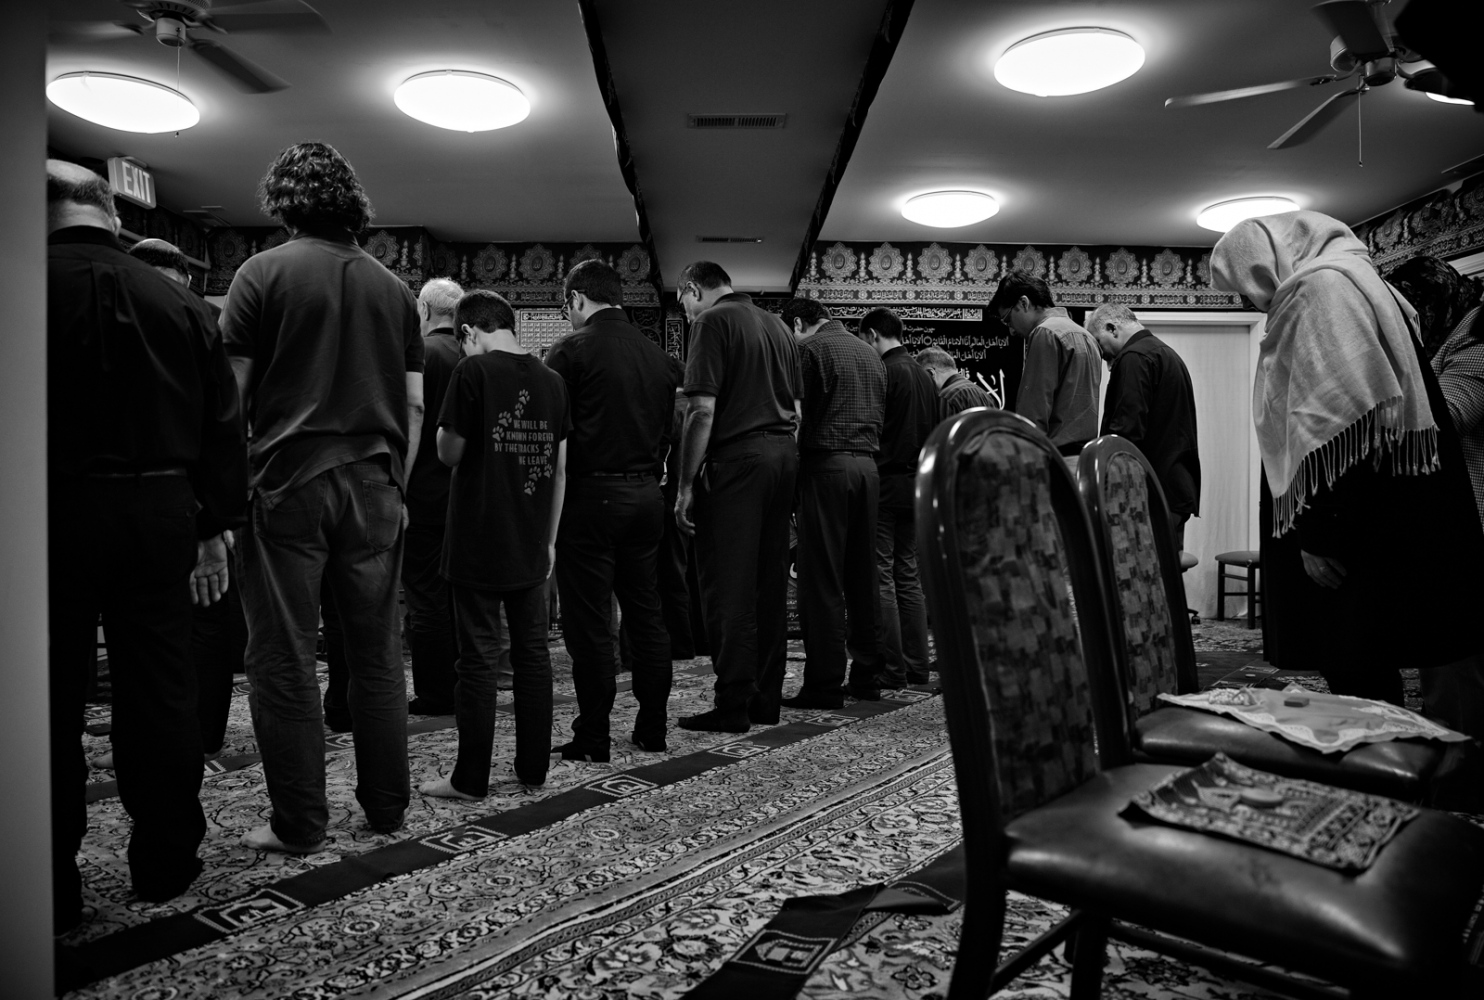 Art and Documentary Photography - Loading Islam-56-Edit.jpg